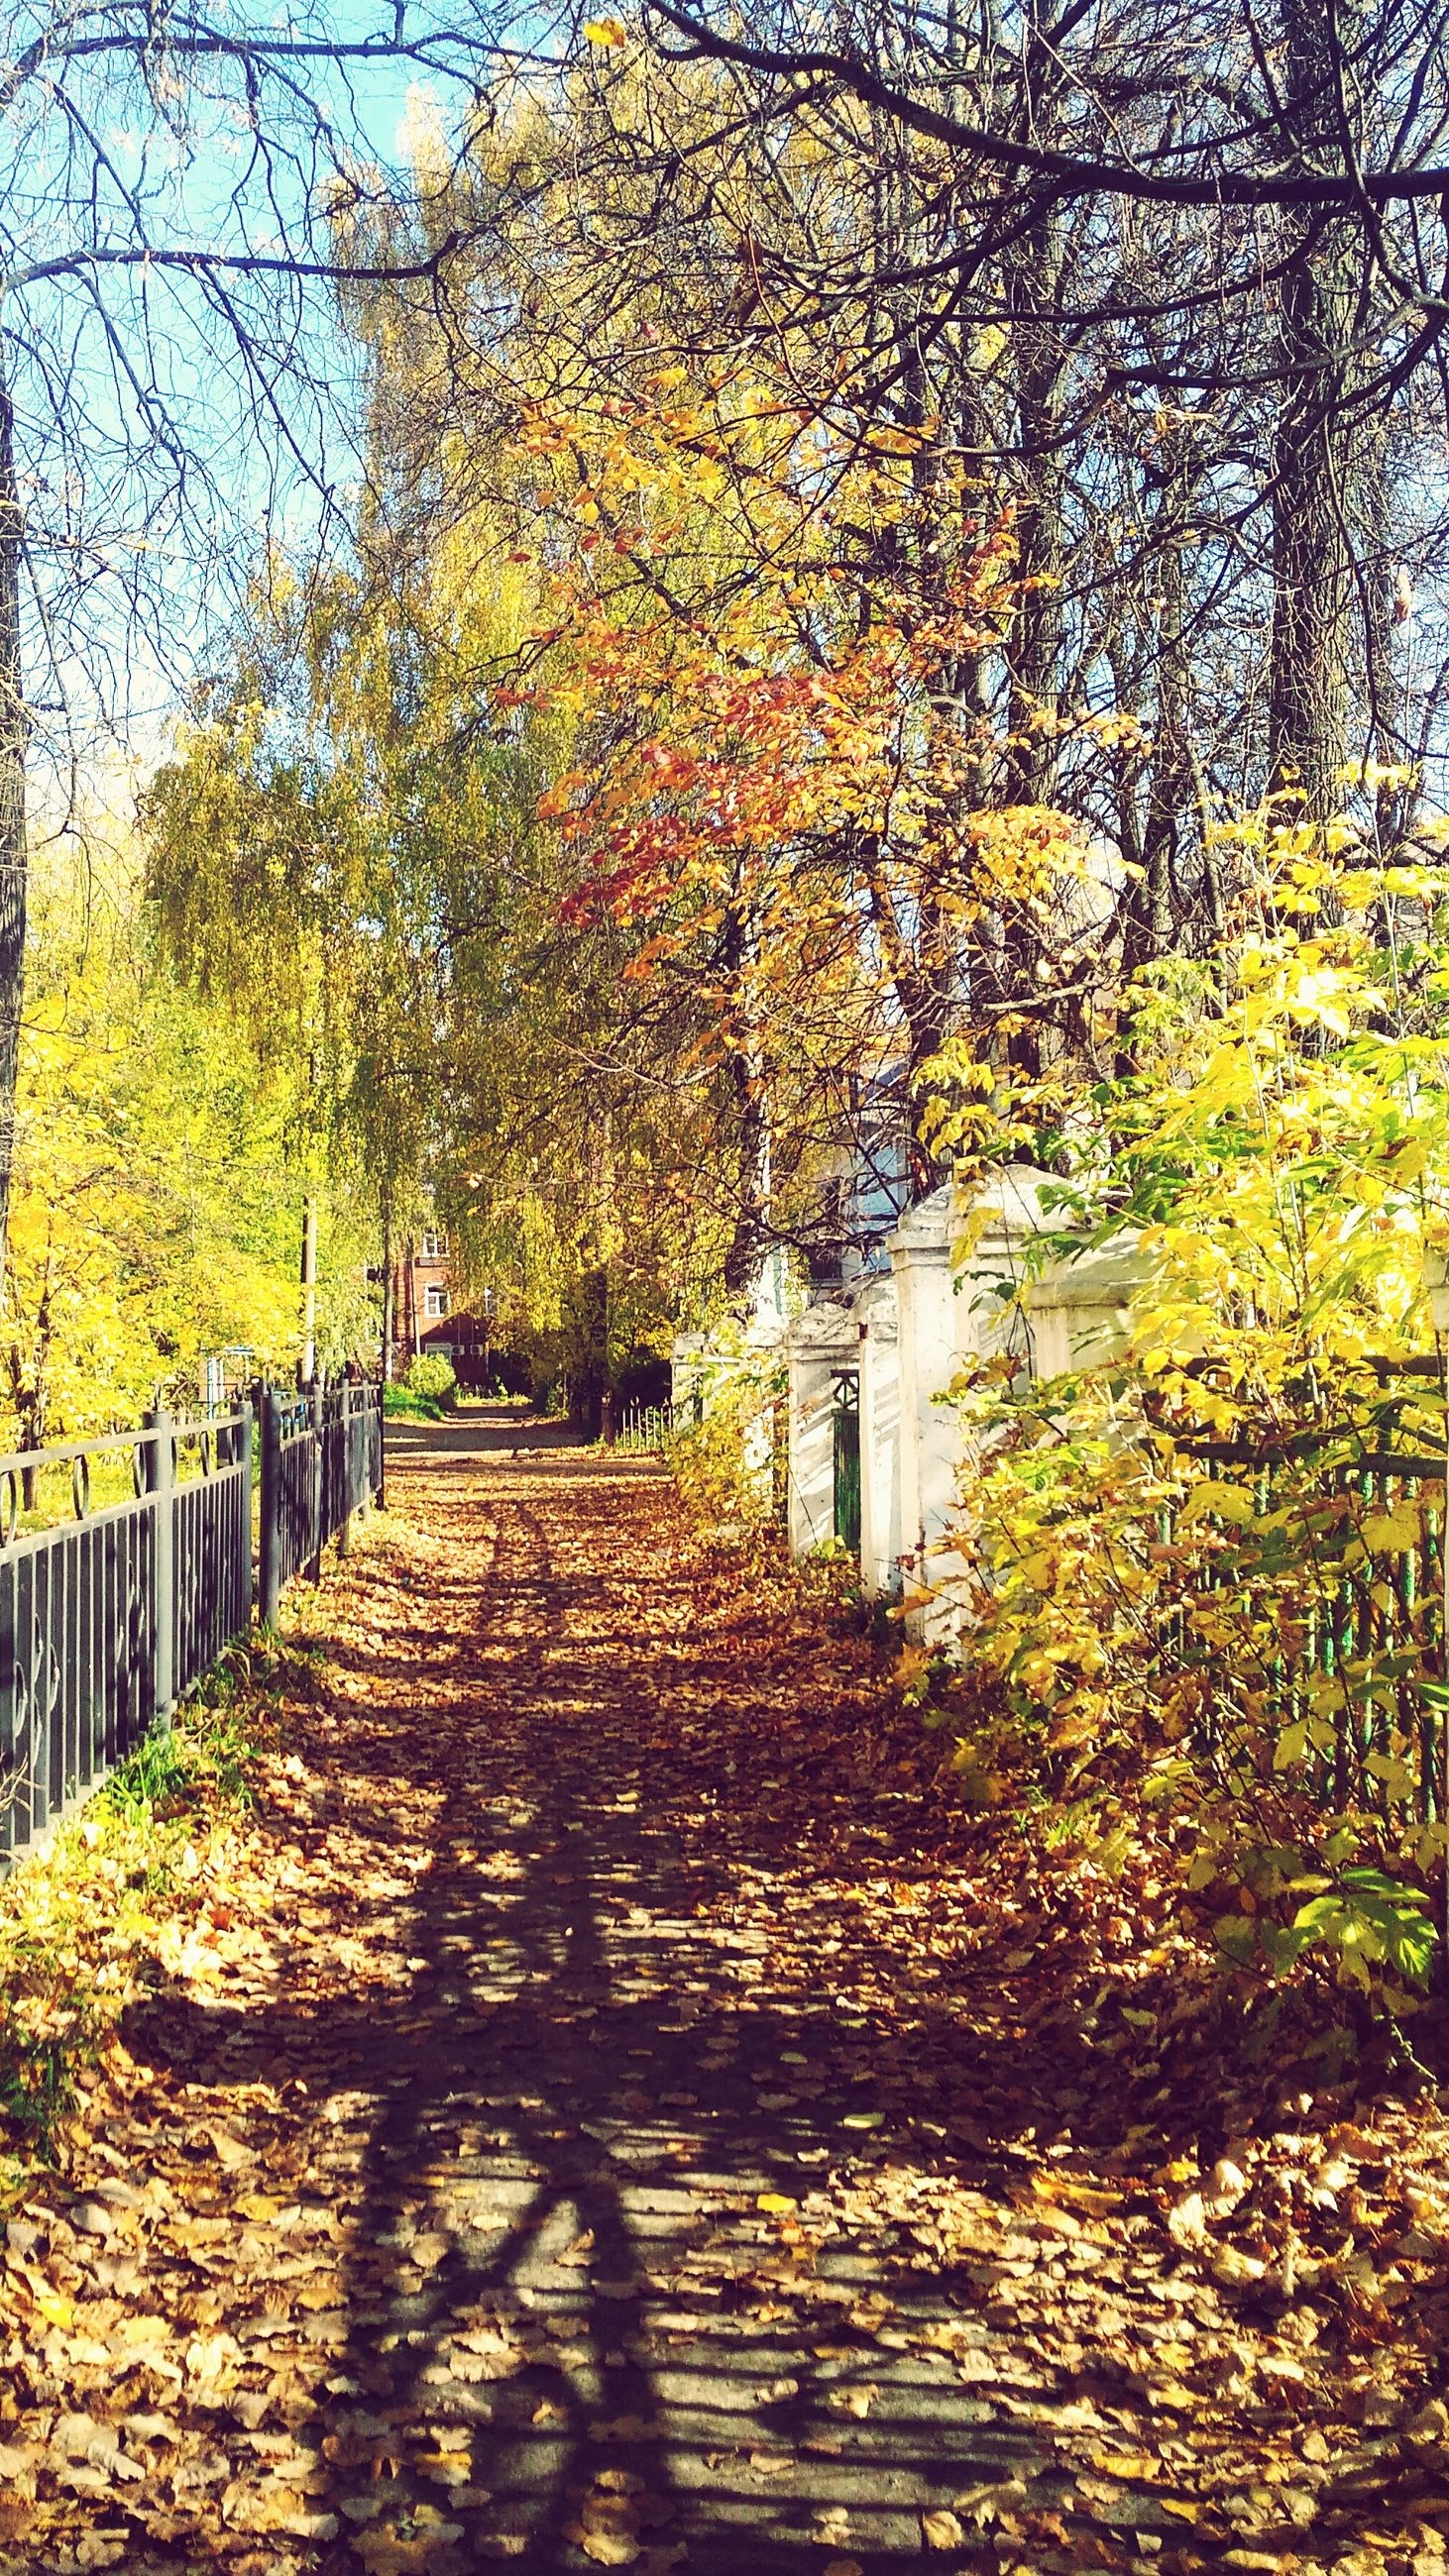 autumn, tree, change, nature, leaf, beauty in nature, the way forward, tranquility, outdoors, day, sunlight, branch, no people, scenics, shadow, walkway, sky